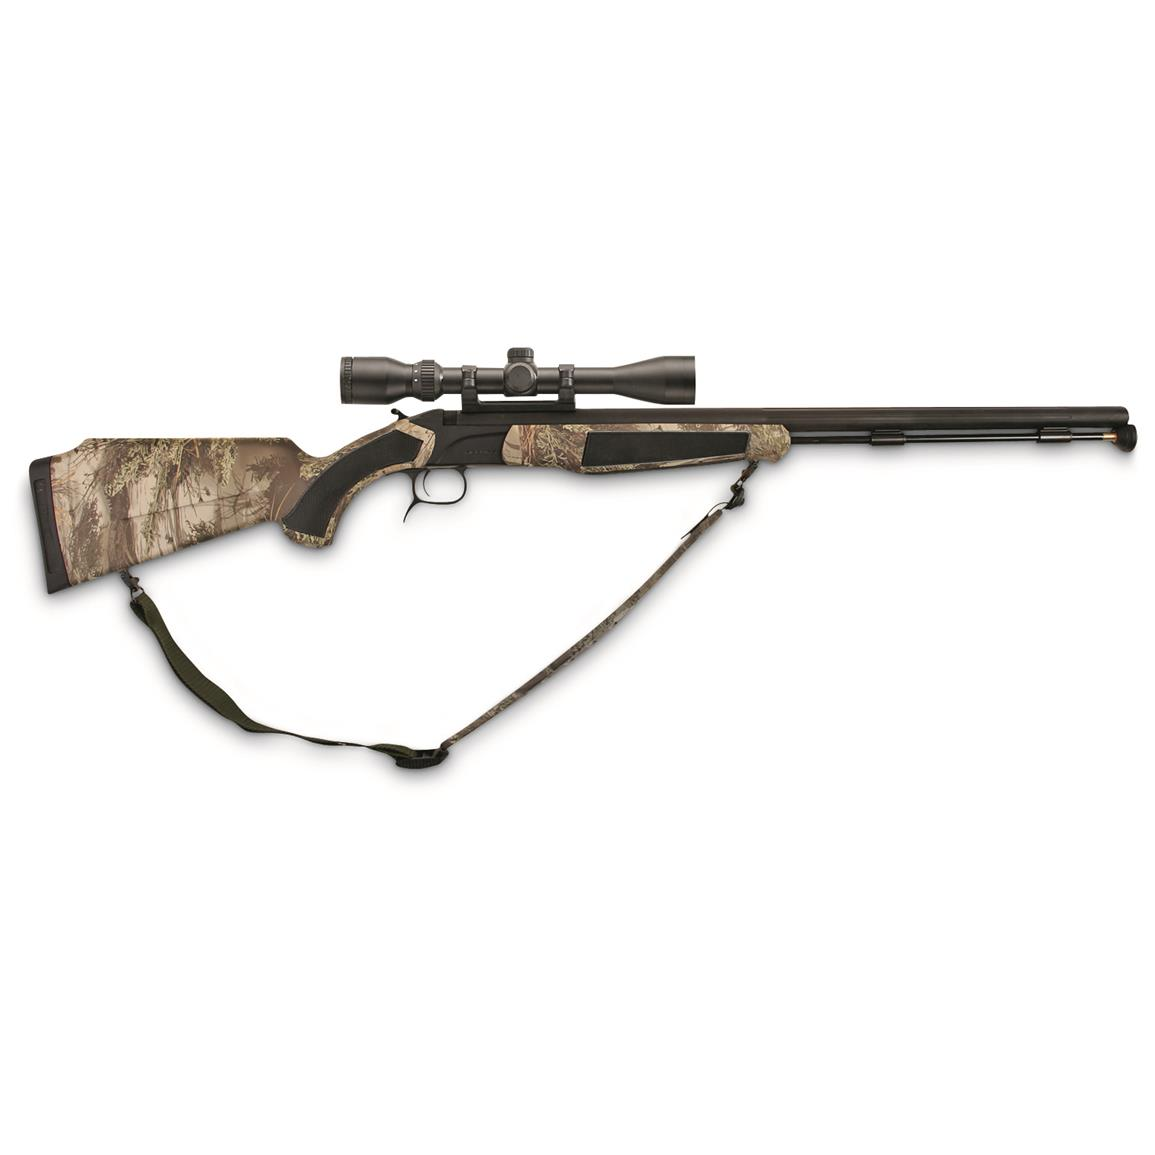 CVA Accura MR Nitride Stainless Steel .50 Caliber Muzzleloader with Dead-on Mount & Scope, Blemished